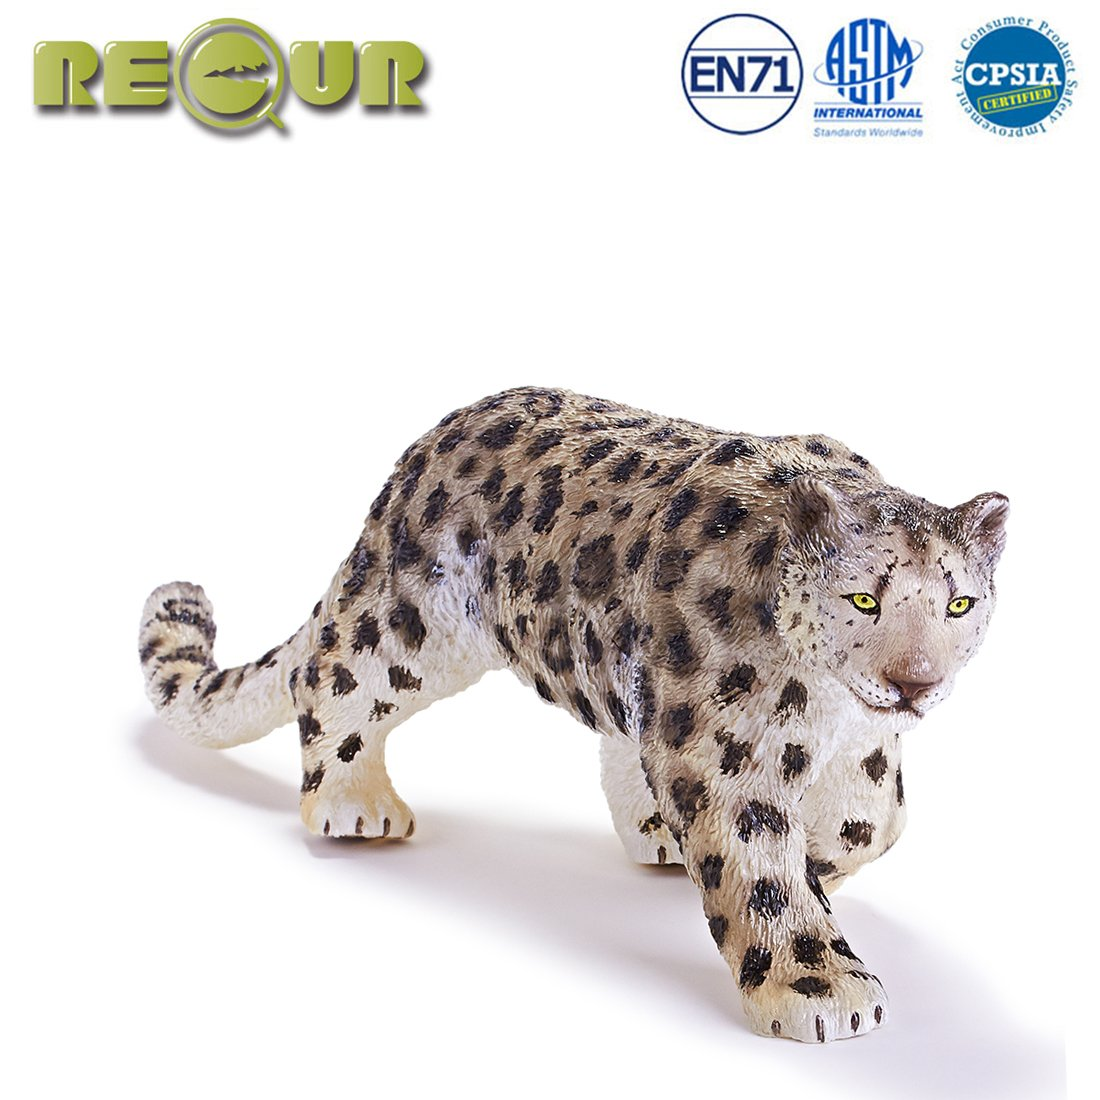 1a91cbb263b RECUR Toys Snow Leopard Action Figure Toys, Soft Hand-Painted Skin Texture  Toys for Kids- 1:8 Scale Realistic Design Female Snow Leopard Replica  10.4'', ...